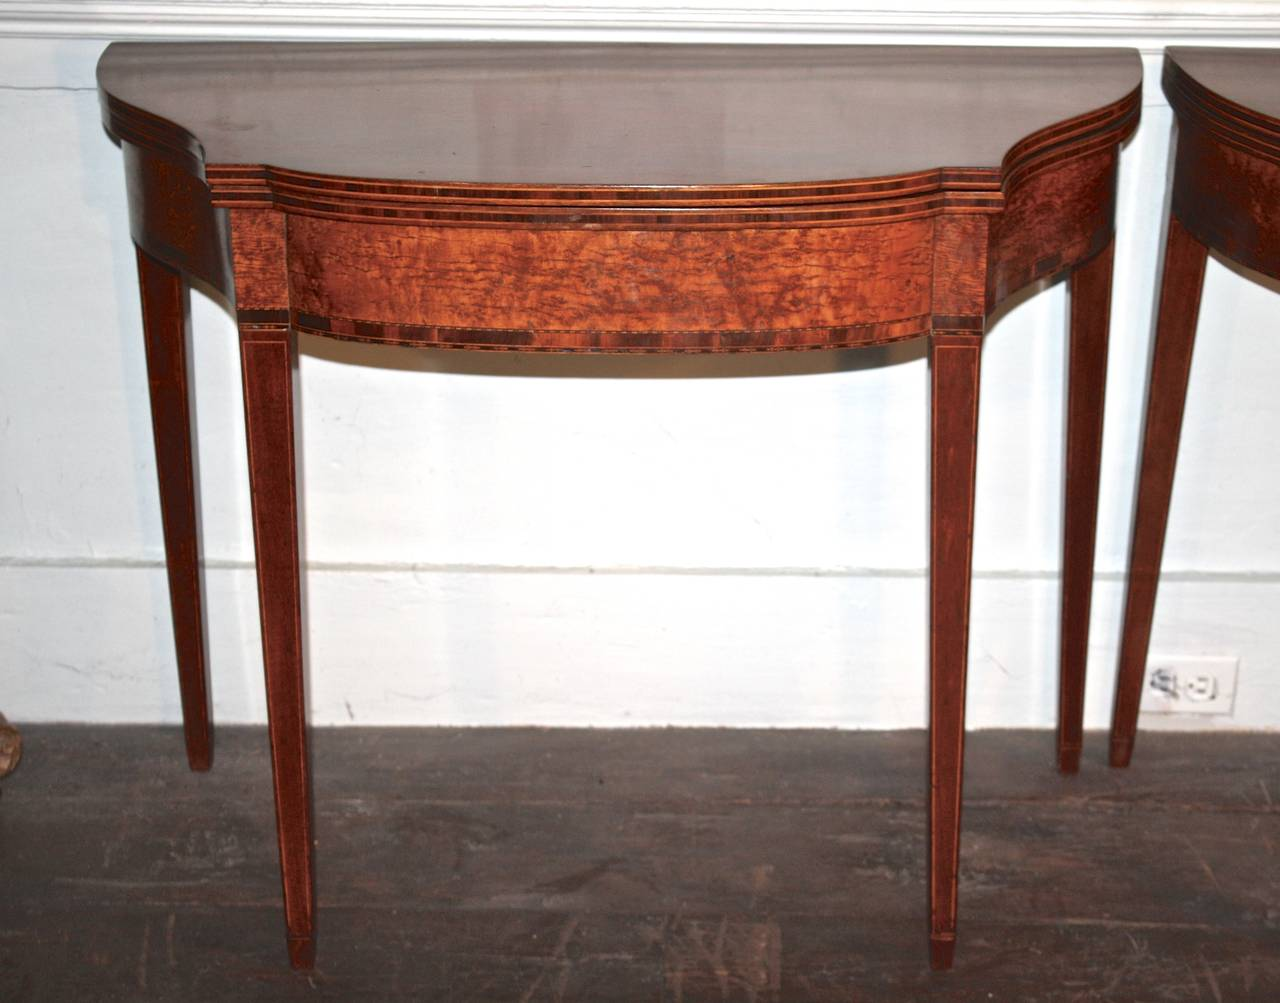 An intricately detailed matched pair of American Hepplewhite manner fold-over swing legged game tables.  Each opens flat to a serpentine 35 x 36 inch bowed four sided top.  Meticulously fine satinwood and ebony inlays, contrasting veneer bandings,